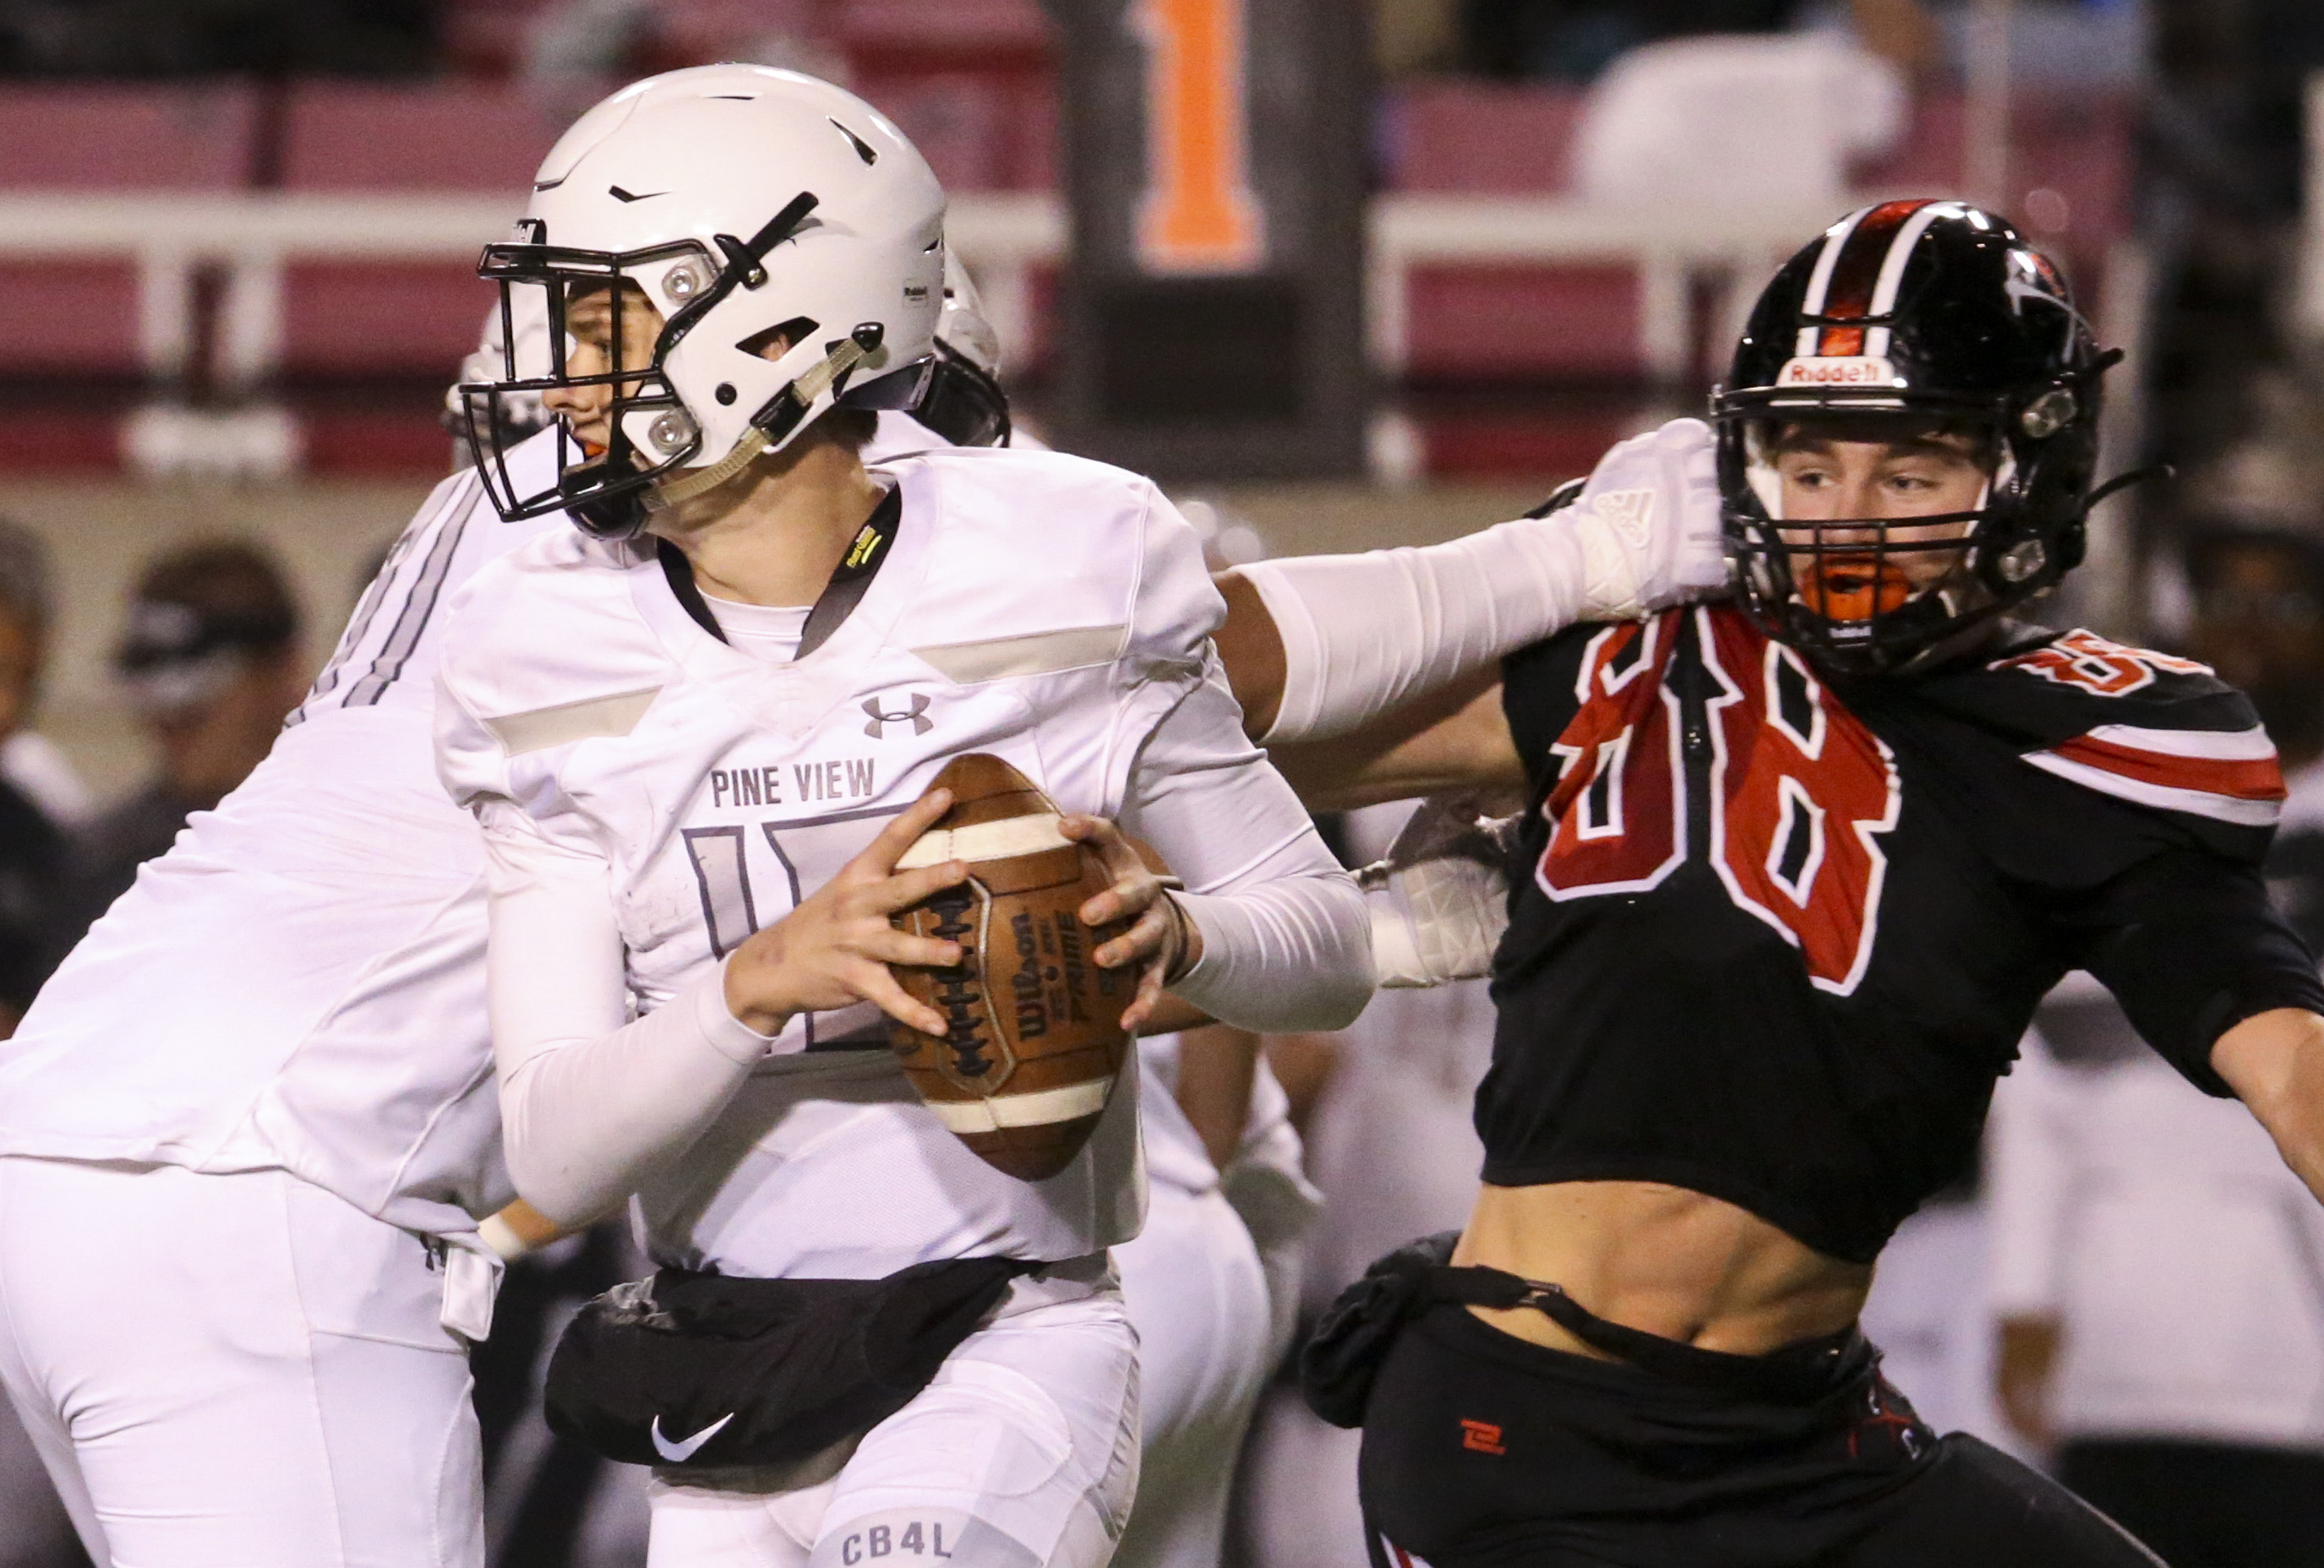 Pine View quarterback Macloud Crowton (15) looks for a throw downfield while receiving a block against Park City safety Andrew Pederson (88) during the second half of a 4A semifinals high school football game at Rice-Eccles Stadium in Salt Lake City on Thursday, Nov. 14, 2019.